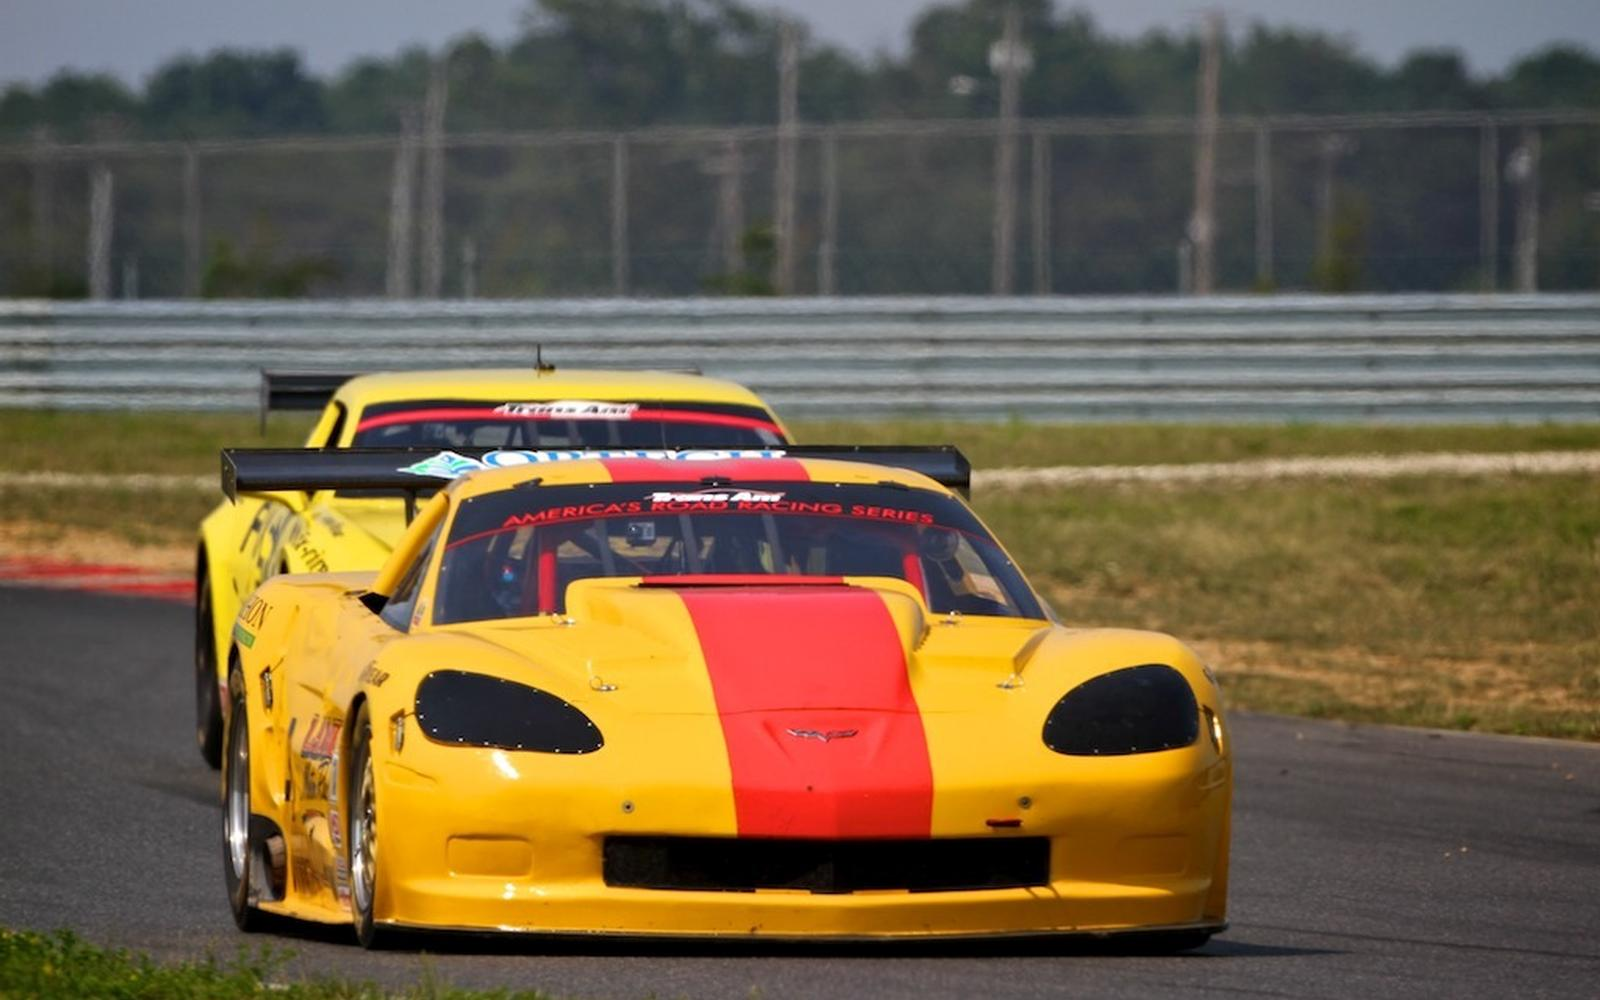 Tony Ave's 12th consecutive pole sets Trans Am record